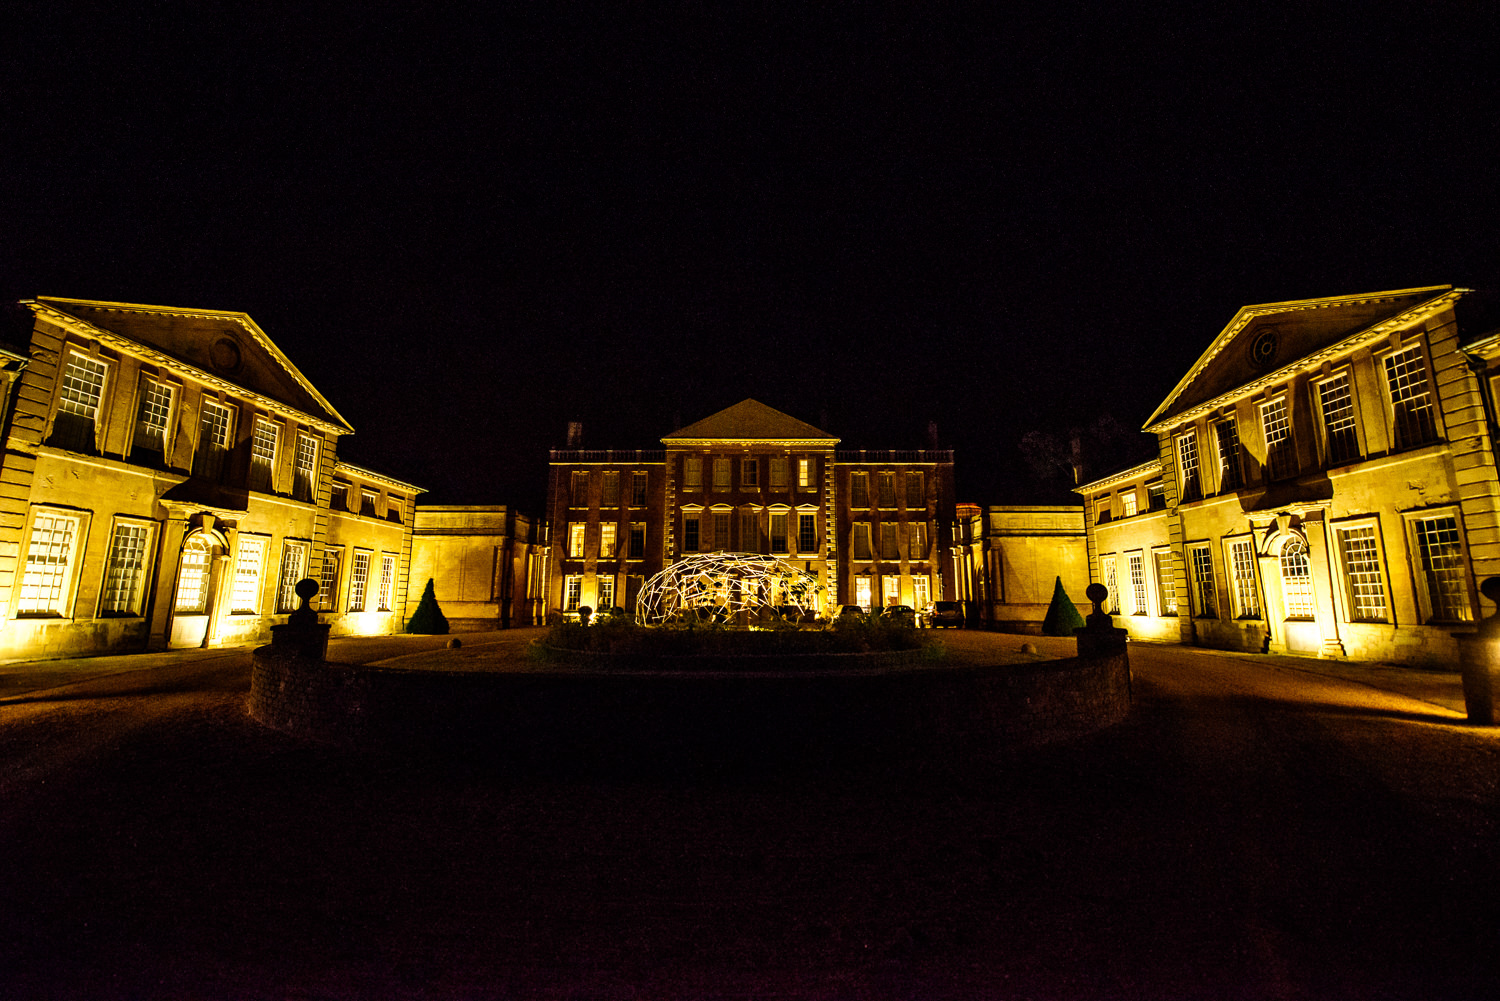 Aynhoe Park Wedding Venue at night